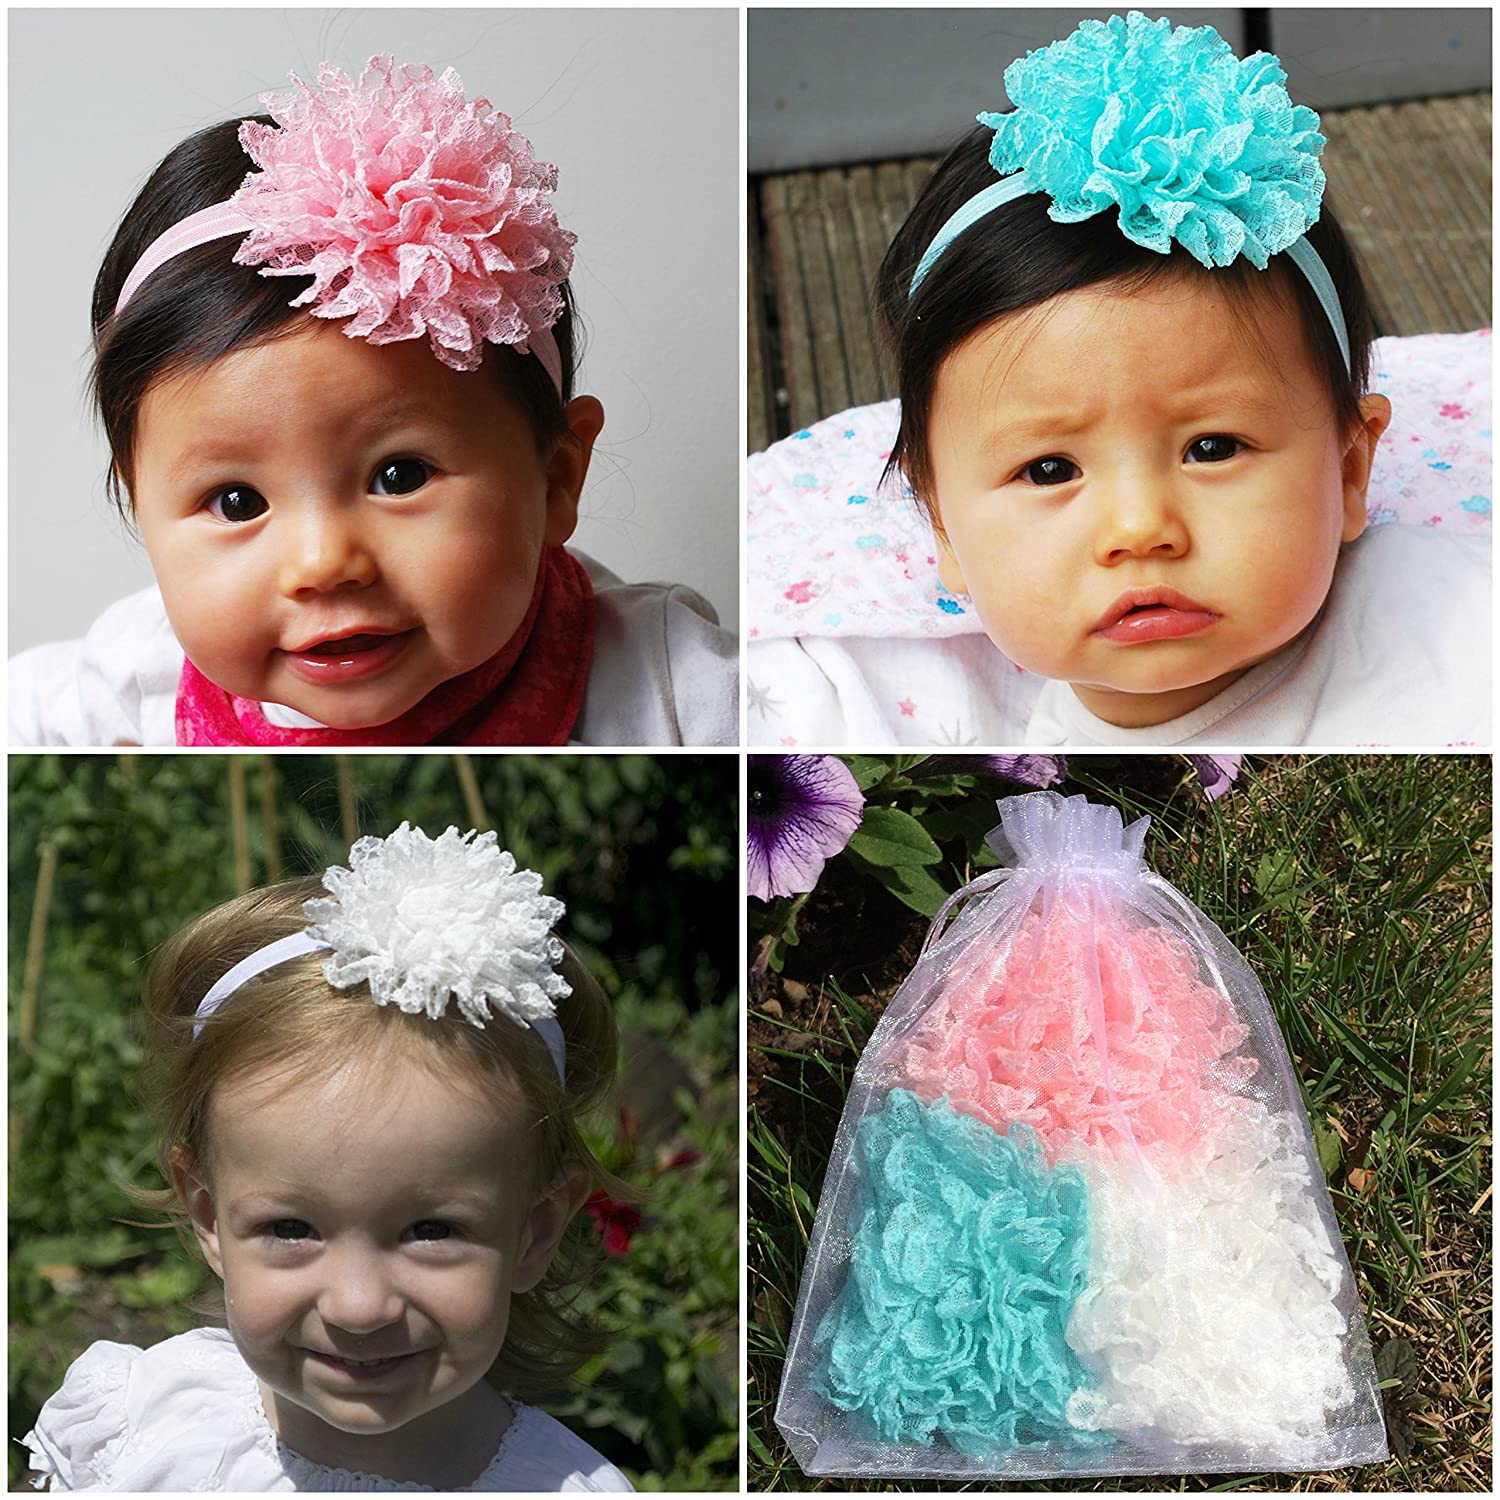 Amazon queenmee pastel baby headbands set of 3 baby flower amazon queenmee pastel baby headbands set of 3 baby flower headband lace set pink flower baby headband white flower baby headband baby headbands mightylinksfo